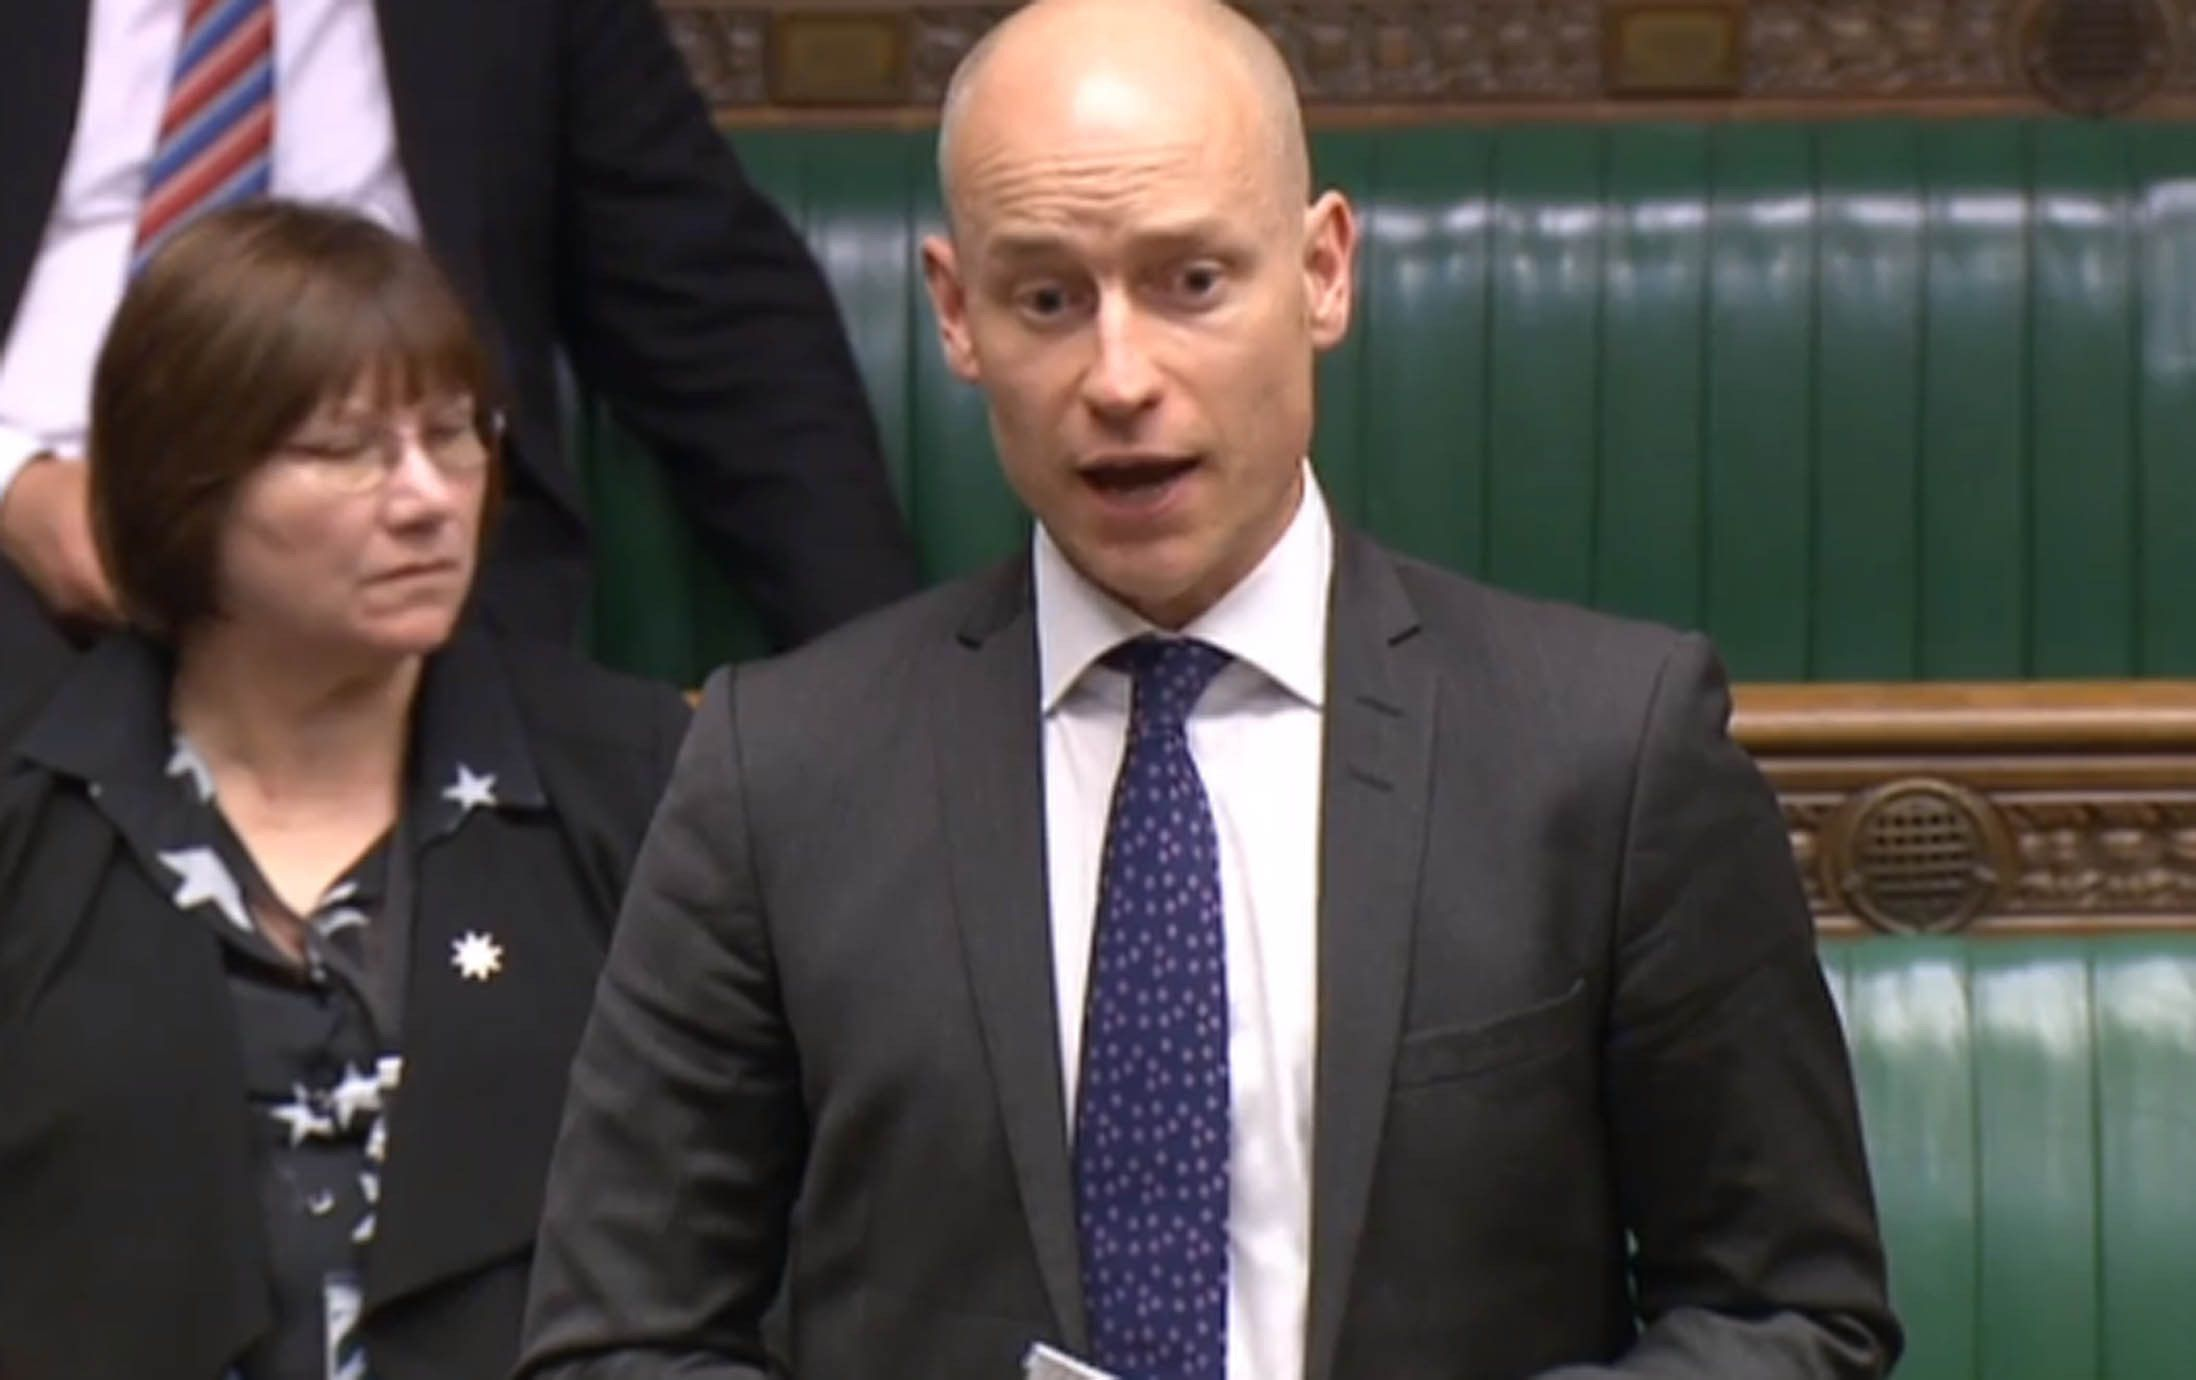 10 Cabinet Ministers Would Back A 'Norway-Style Brexit', Claims Labour MP Stephen